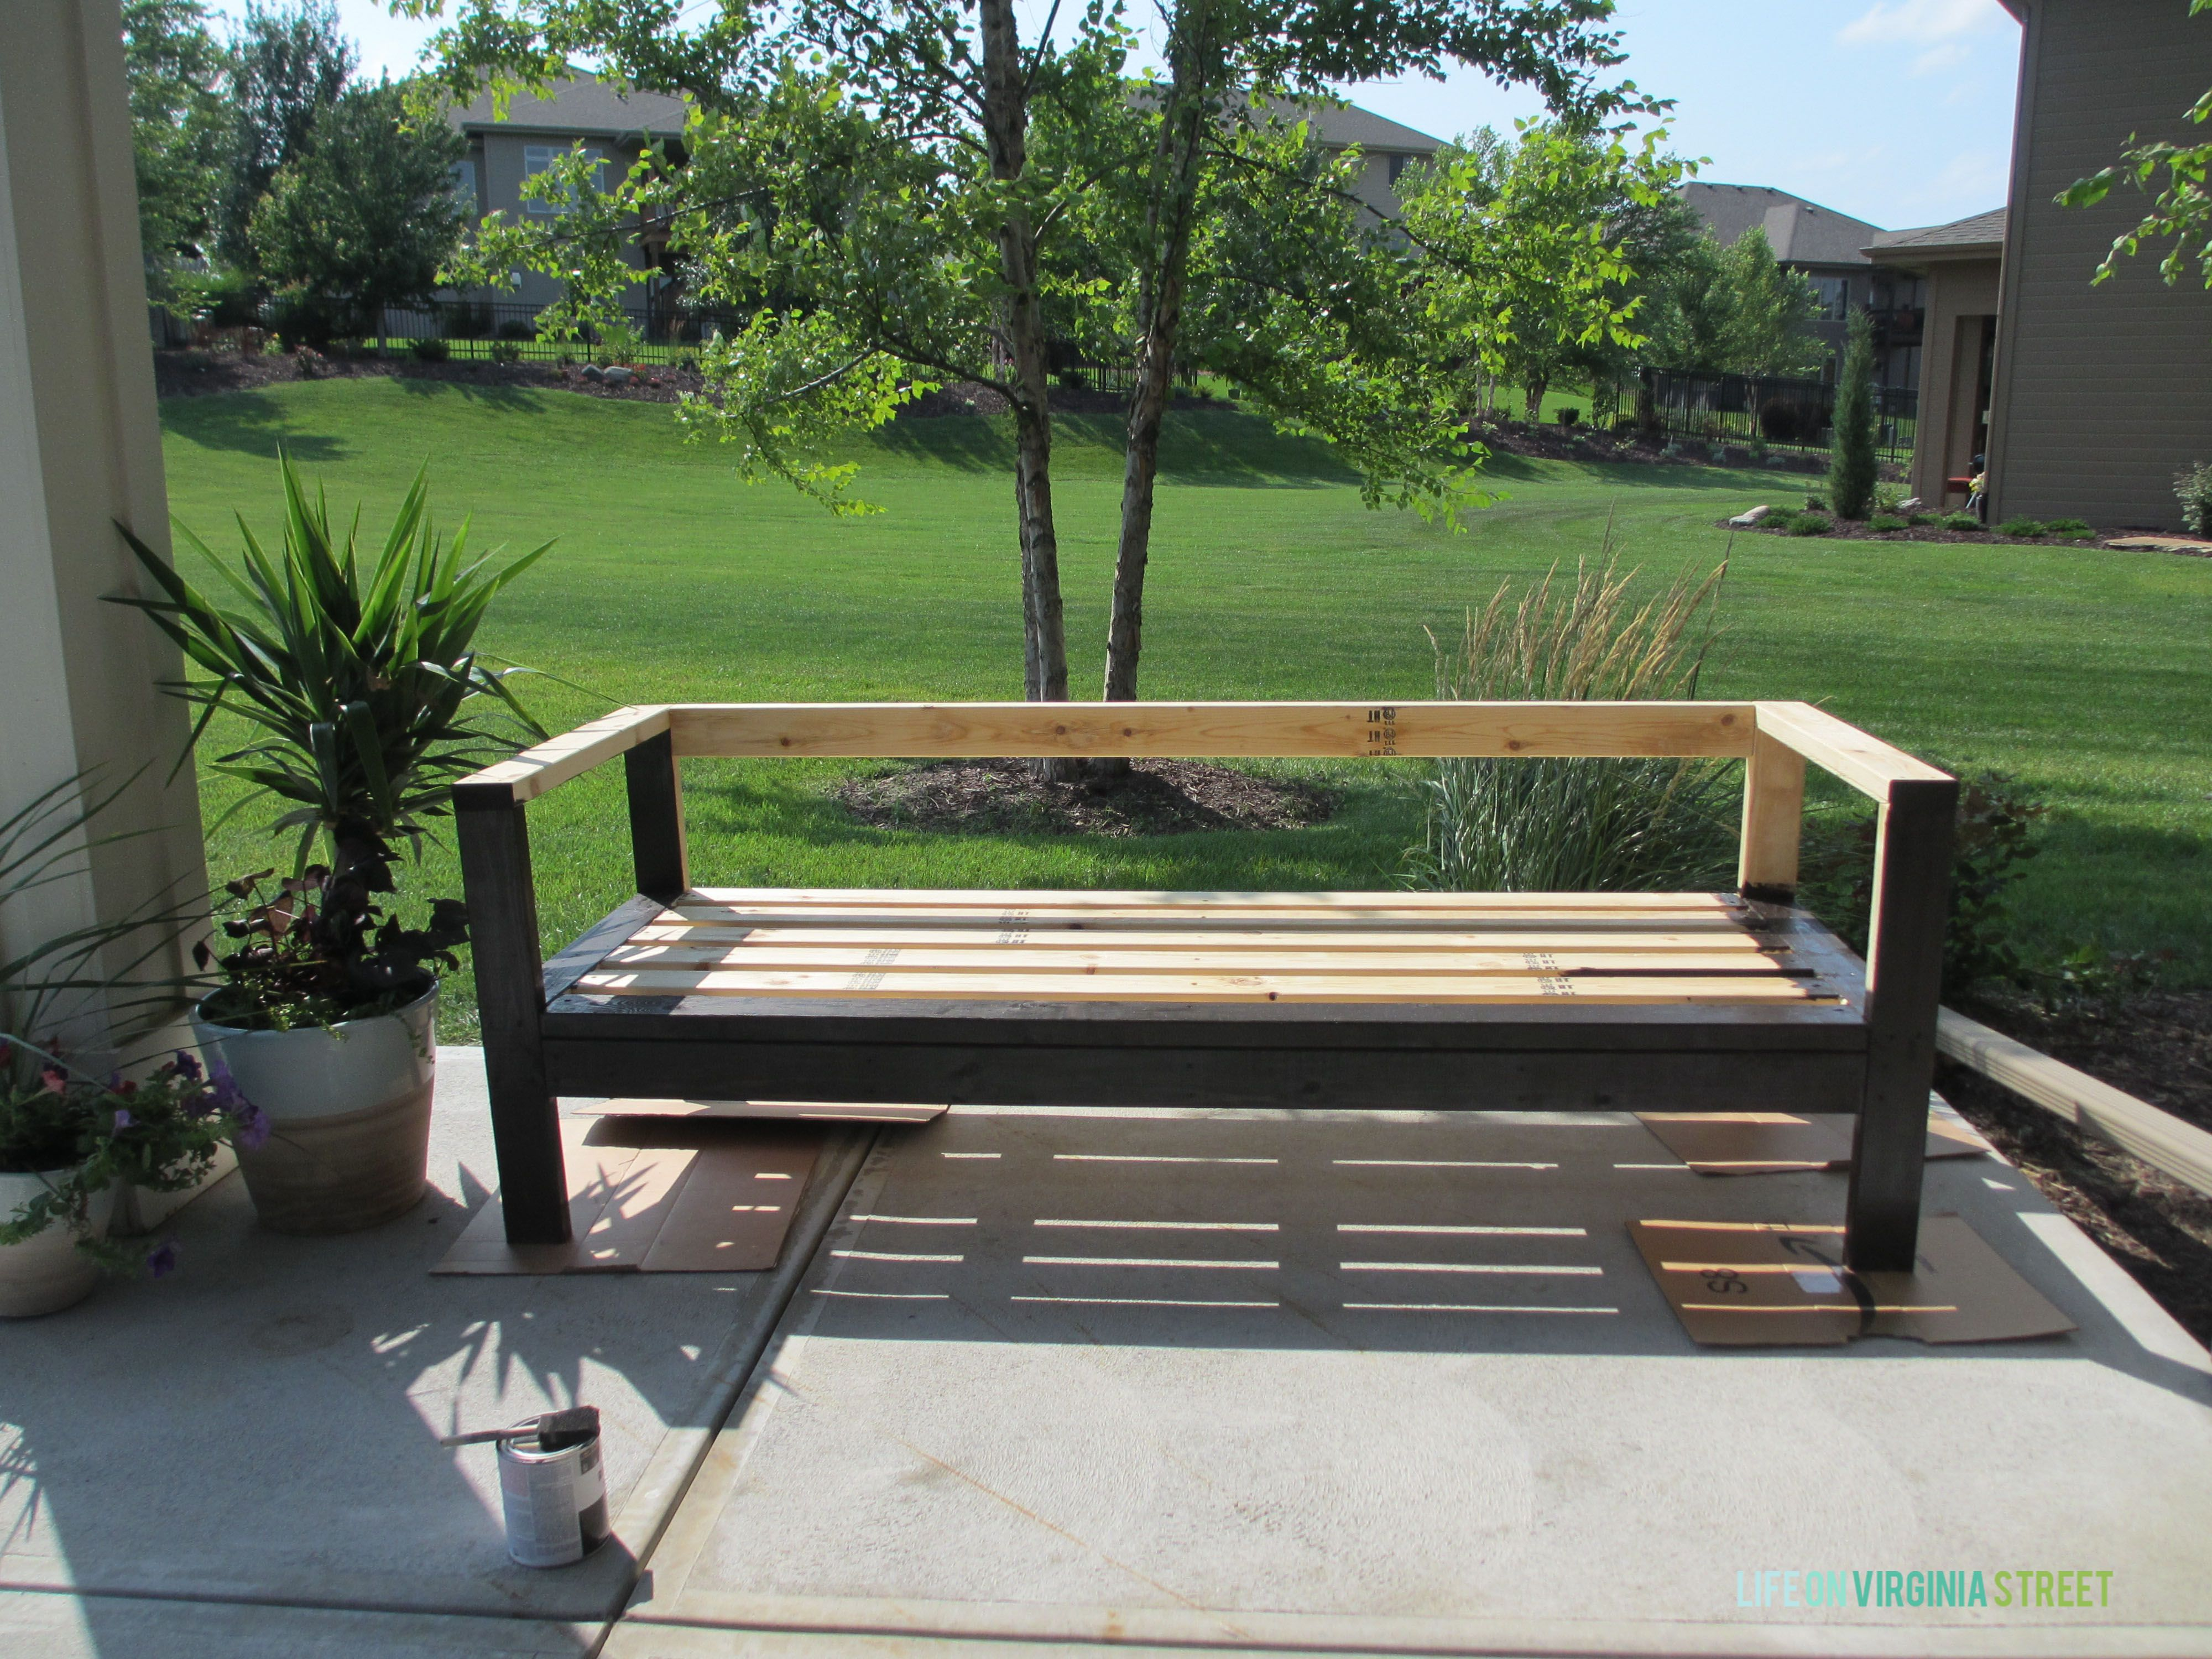 Diy Outdoor Couch Diy Outdoor Furniture Outdoor Couch 400 x 300